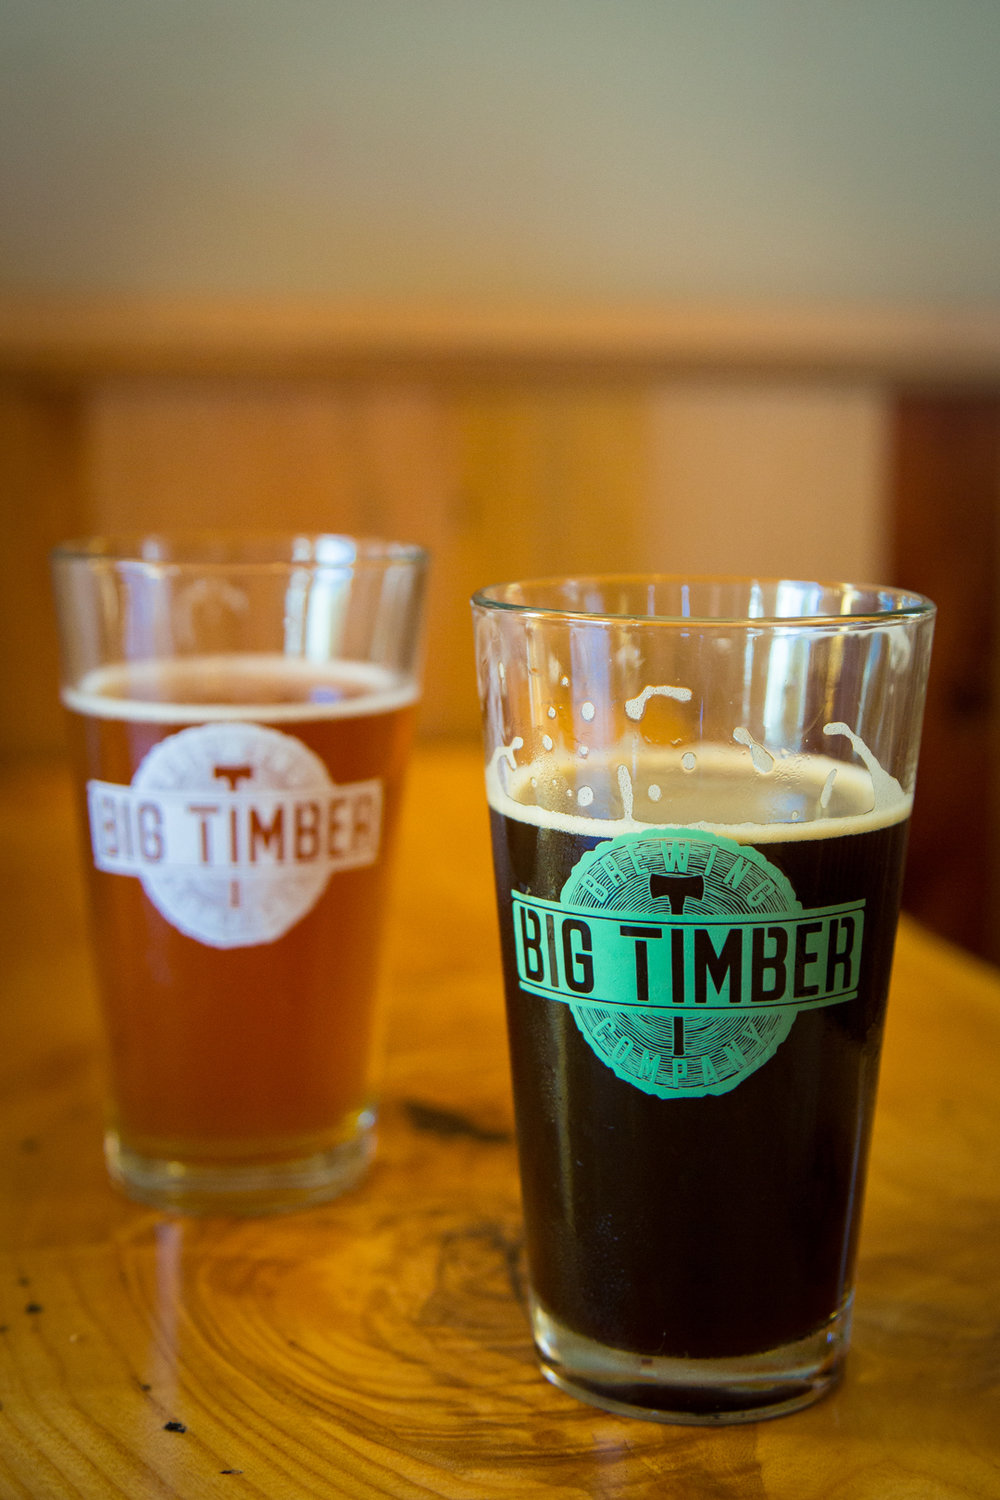 If you ever get the opportunity to stop into Big Timber Brewery, you won't be dissapointed!